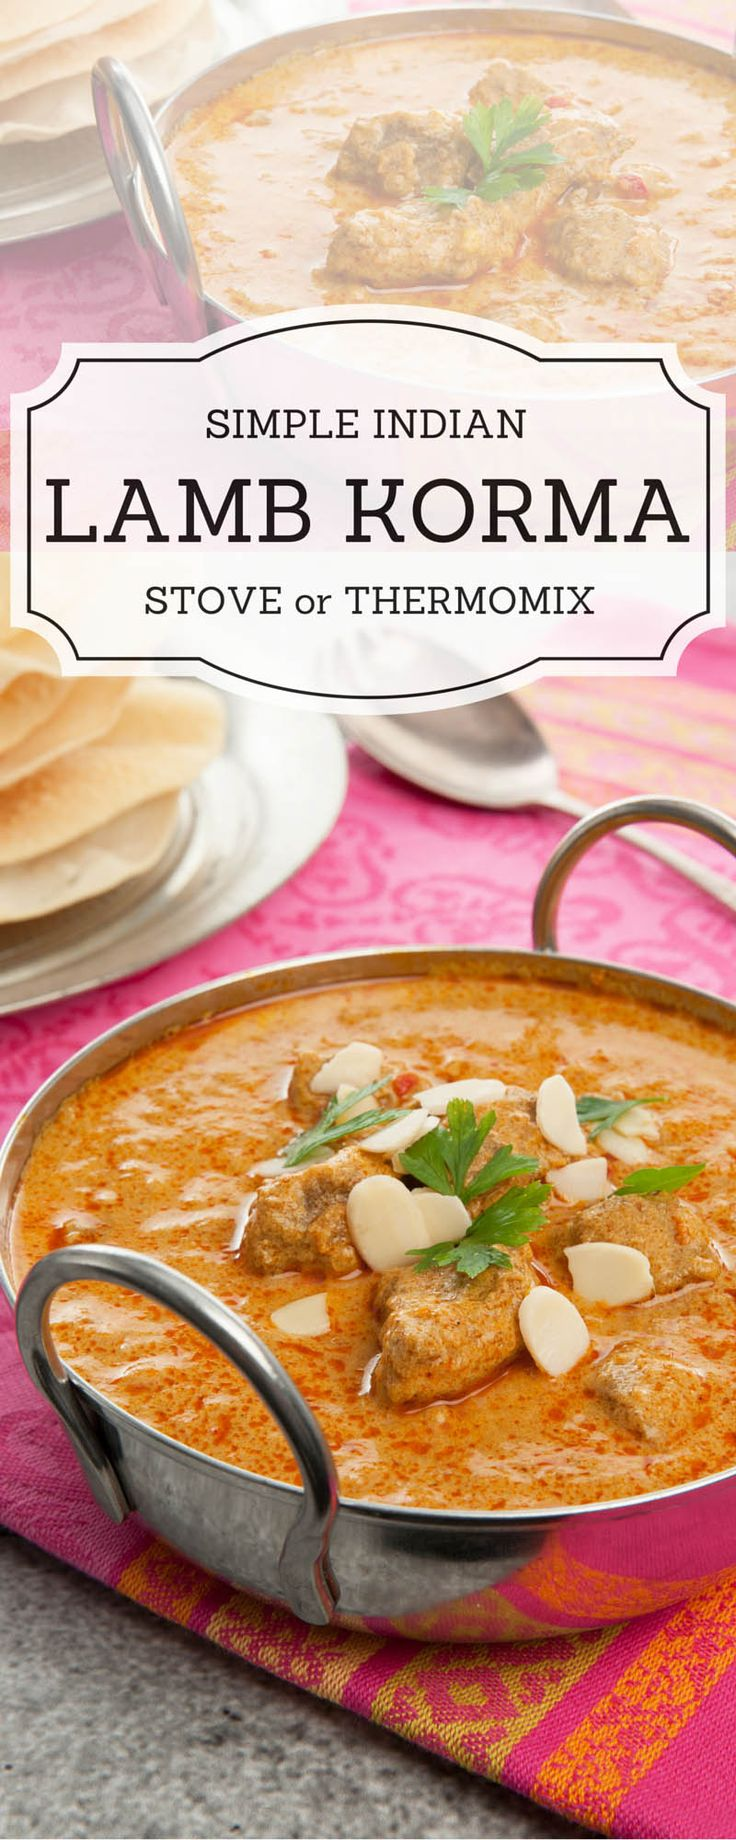 What's your favourite Indian recipe?? Lamb Rogan Josh, Butter Chicken, Dahl Makhani? We've got you covered, all these recipes & more in An Indian ThermoKitchen. #Thermomix #Indian via @thermokitchen